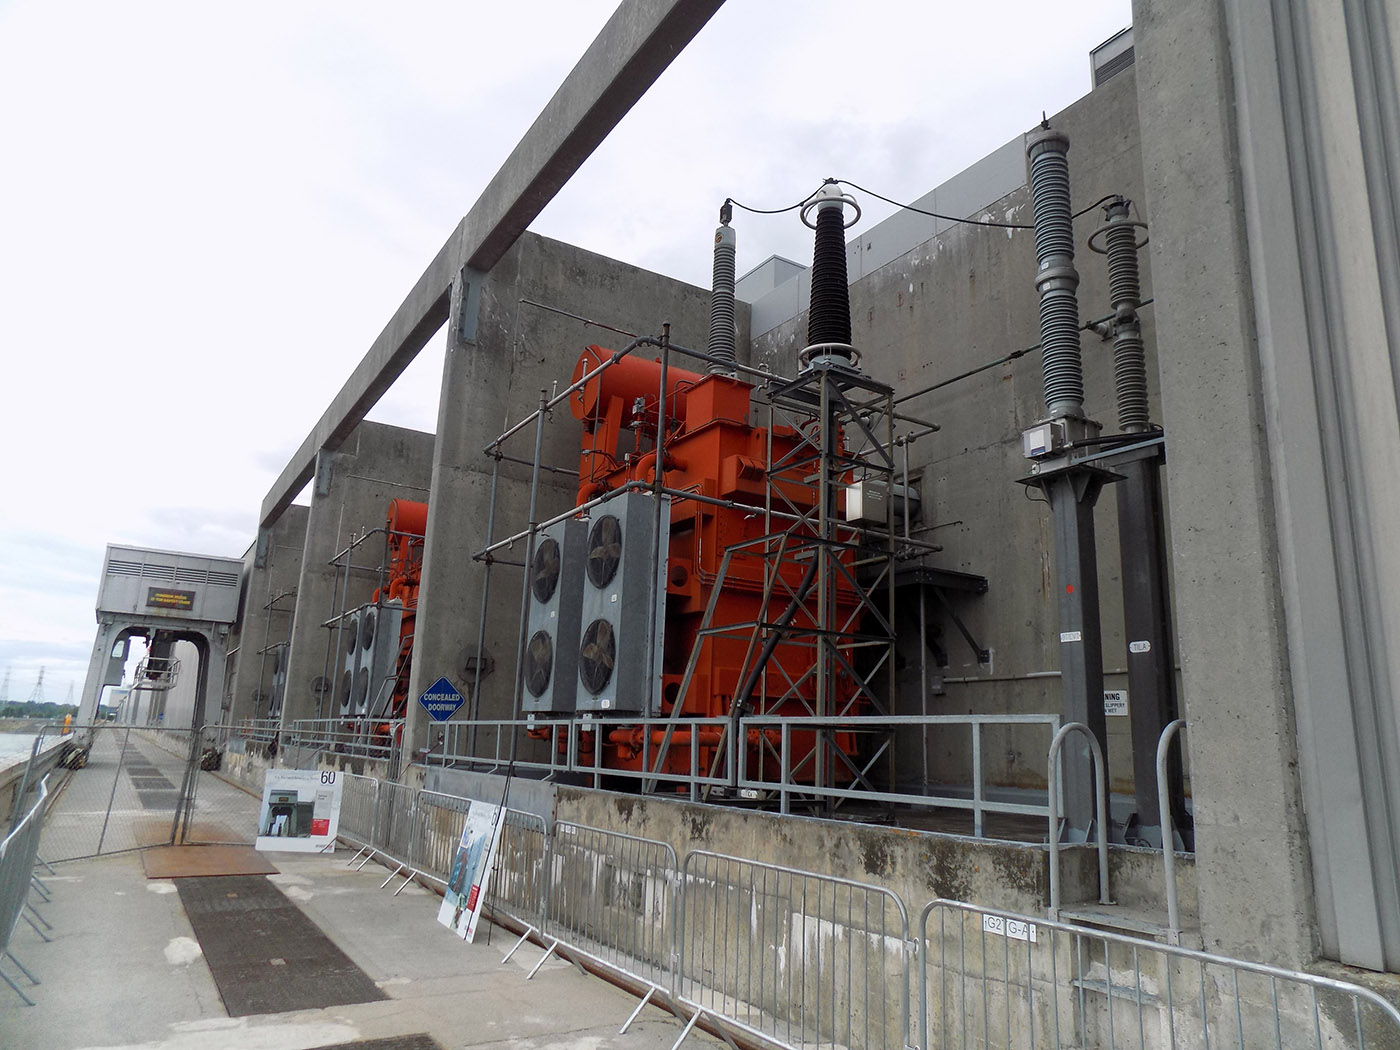 These giant transformers send the electricity generated at the St. Lawrence project into the power grid. The transformers on the Ontario side of the dam are orange. They're gray on the New York side. Photo: James Morgan